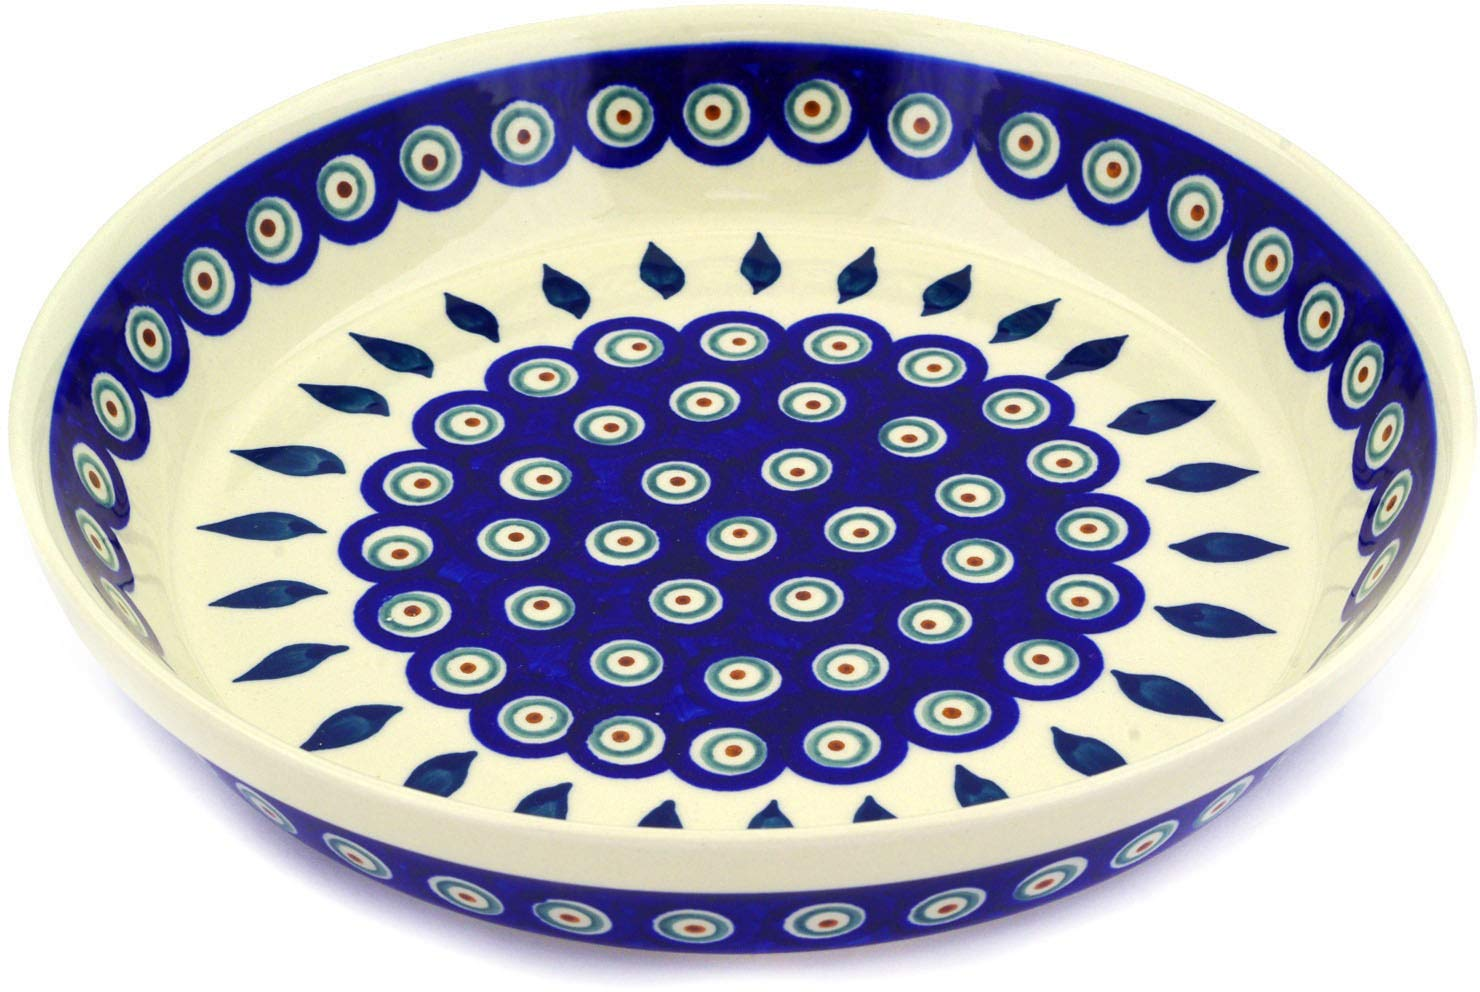 Polish Pottery 9½-inch Pie Dish (Peacock Leaves Theme) + Certificate of Authenticity